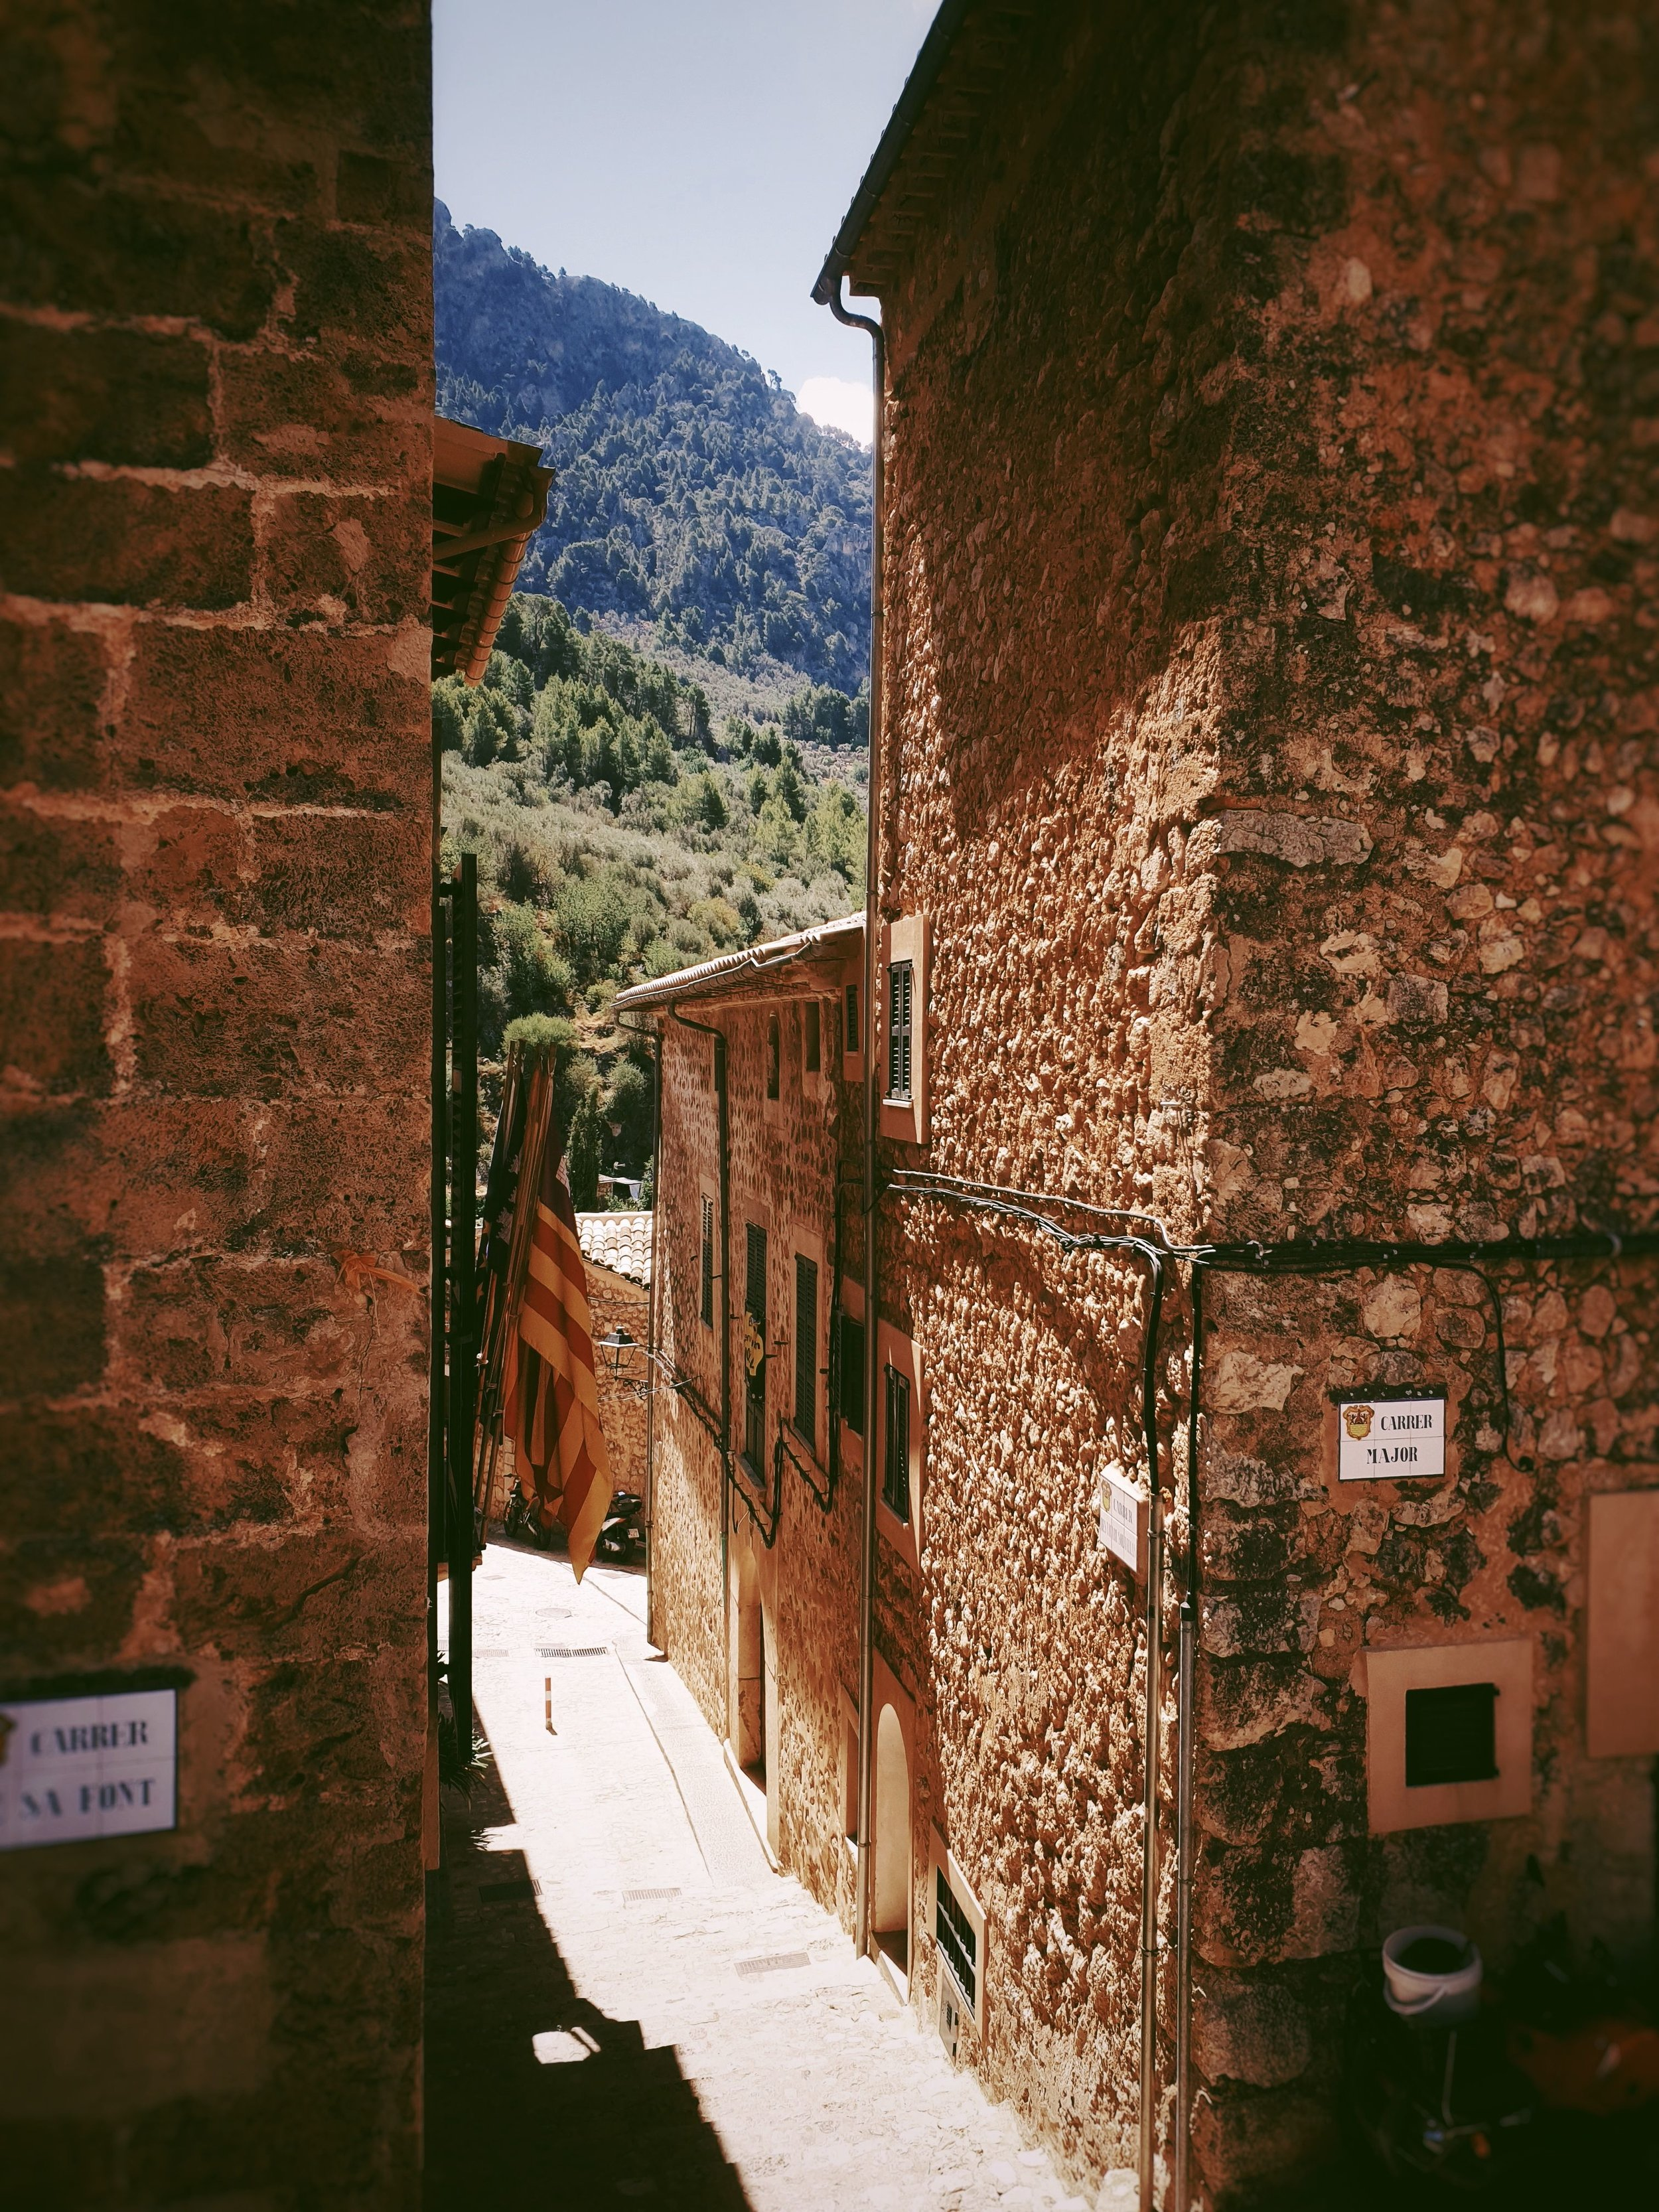 The winding old streets of Fornalutx